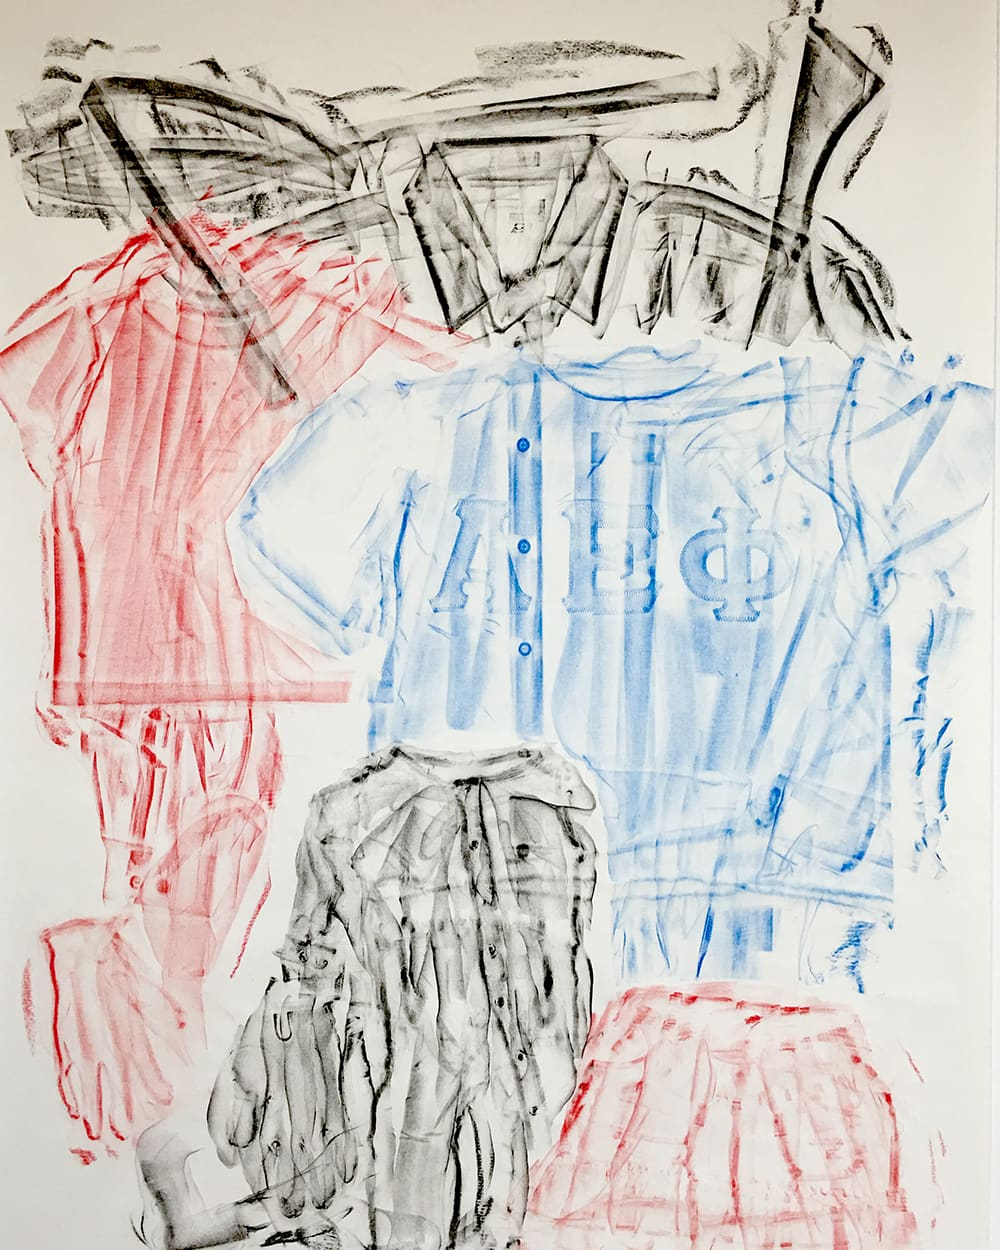 Group Blocks: Study in wax crayon, 2019